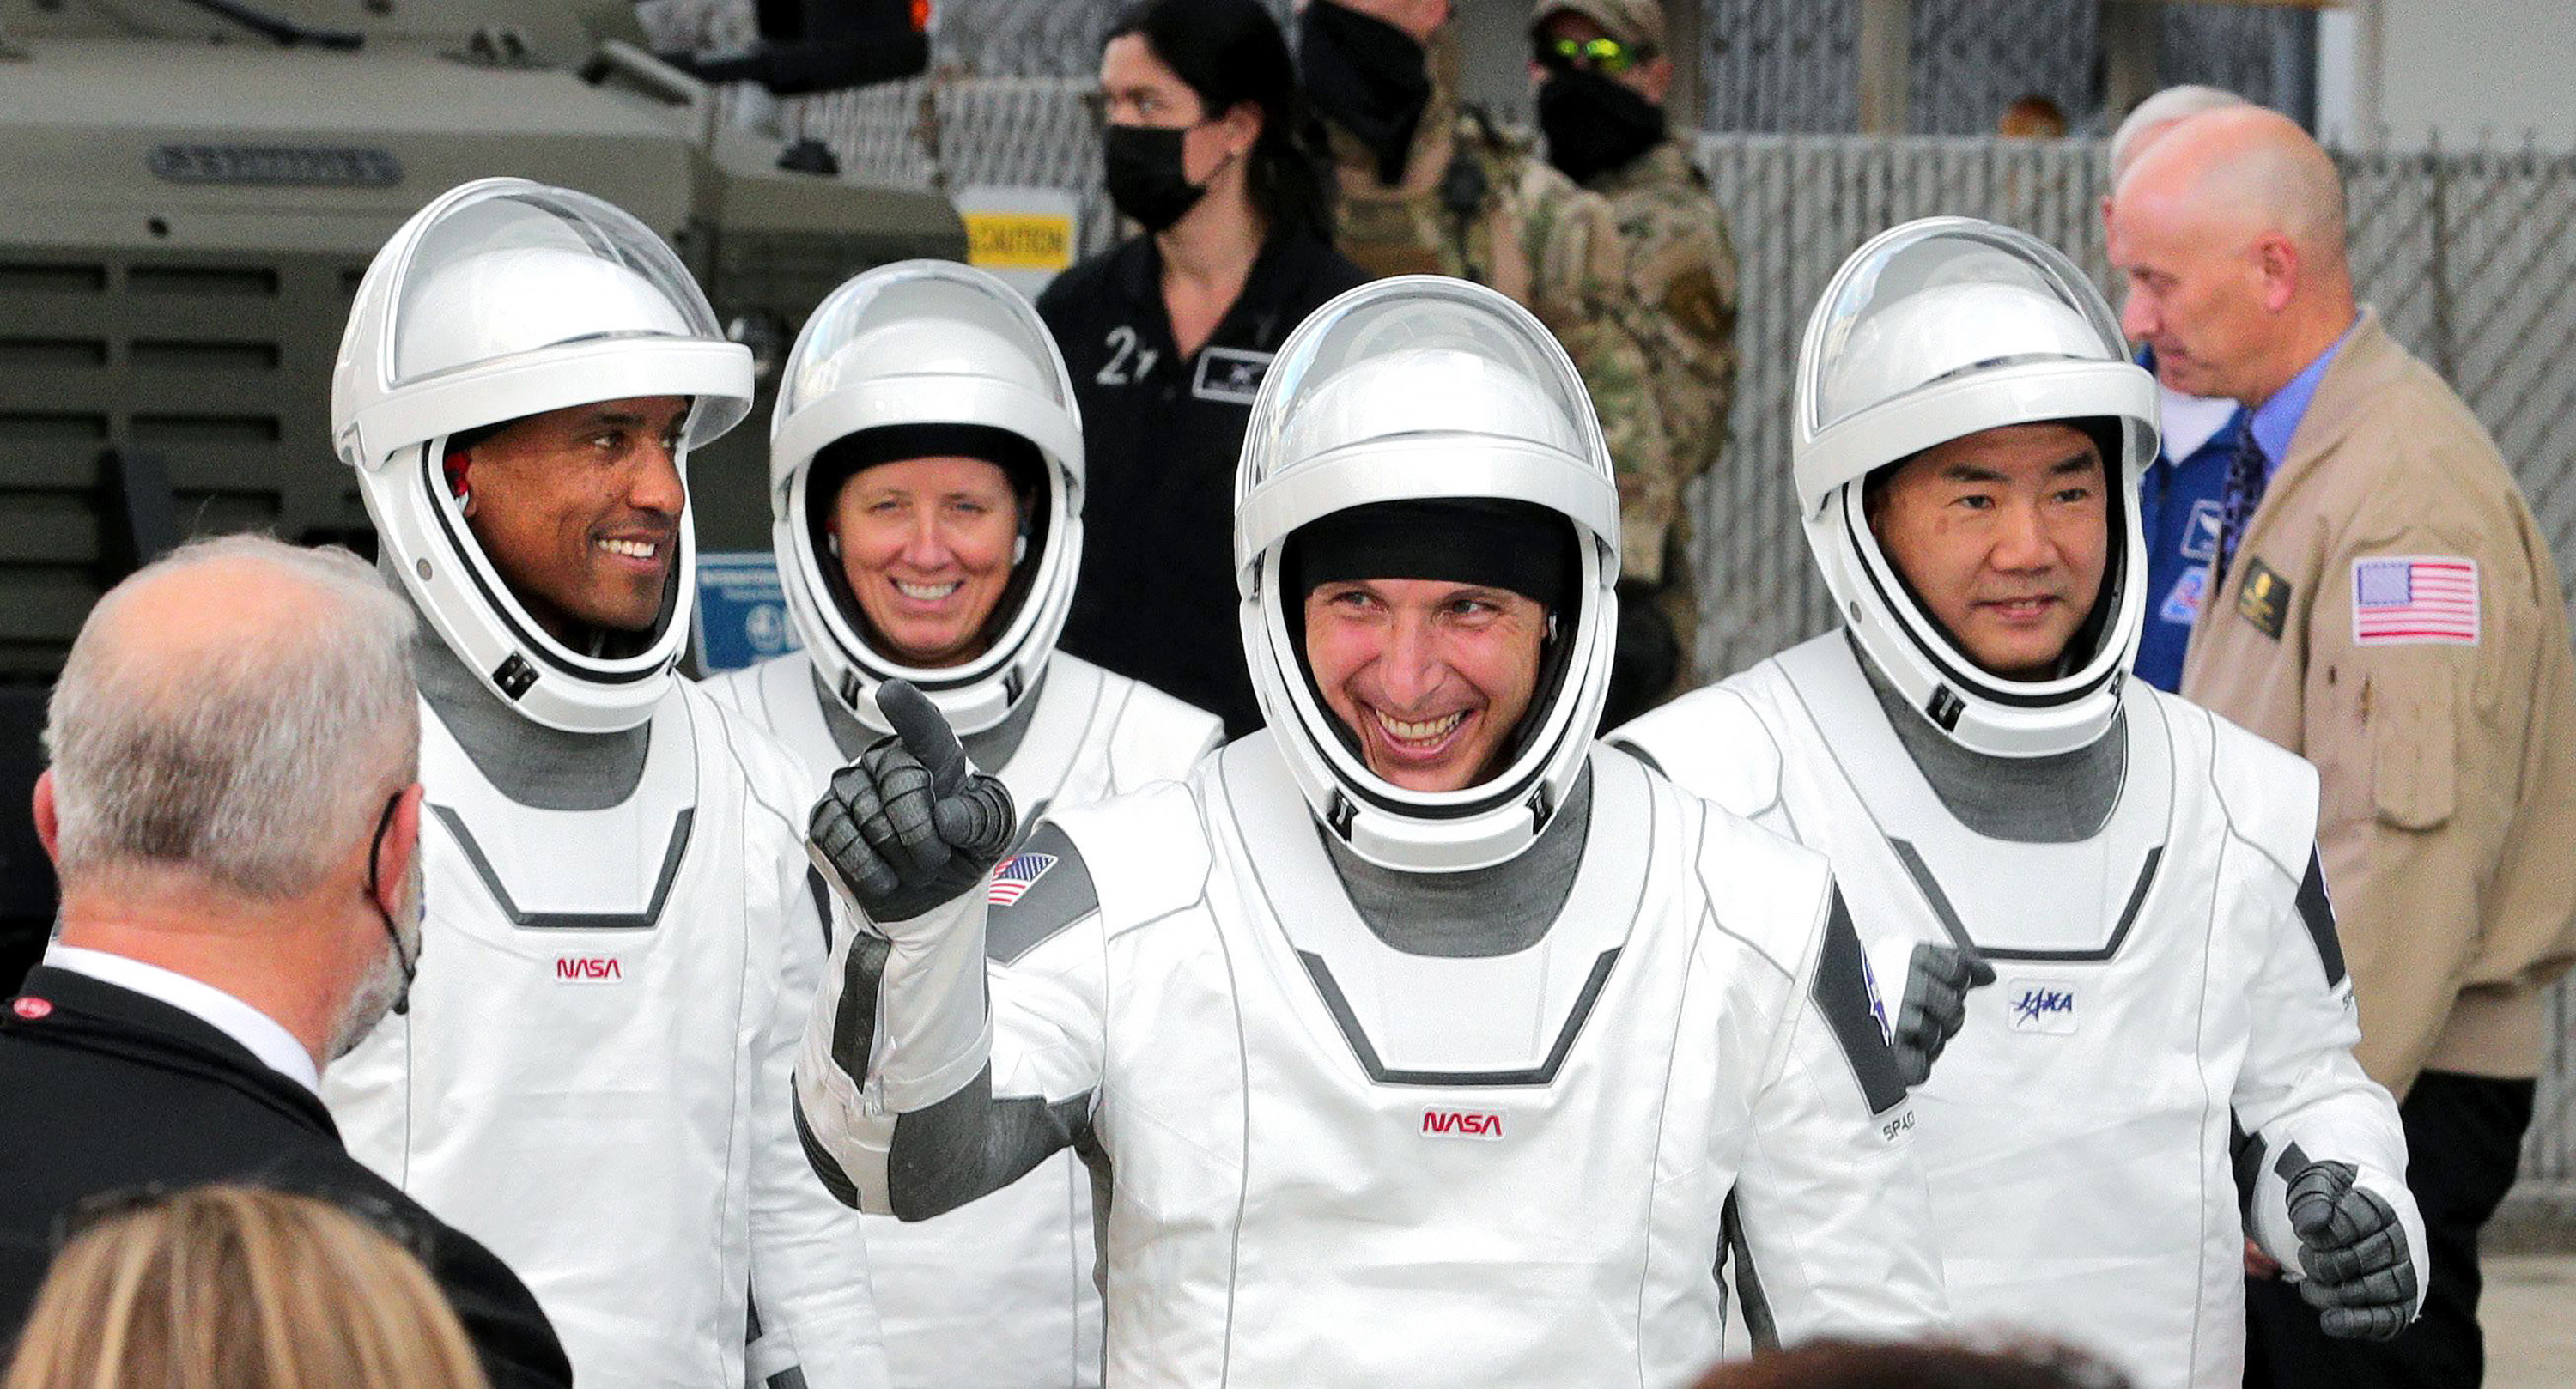 The astronauts of SpaceX Crew-1 head for complex 39-A for launch of the Falcon 9 rocket to the International Space Station